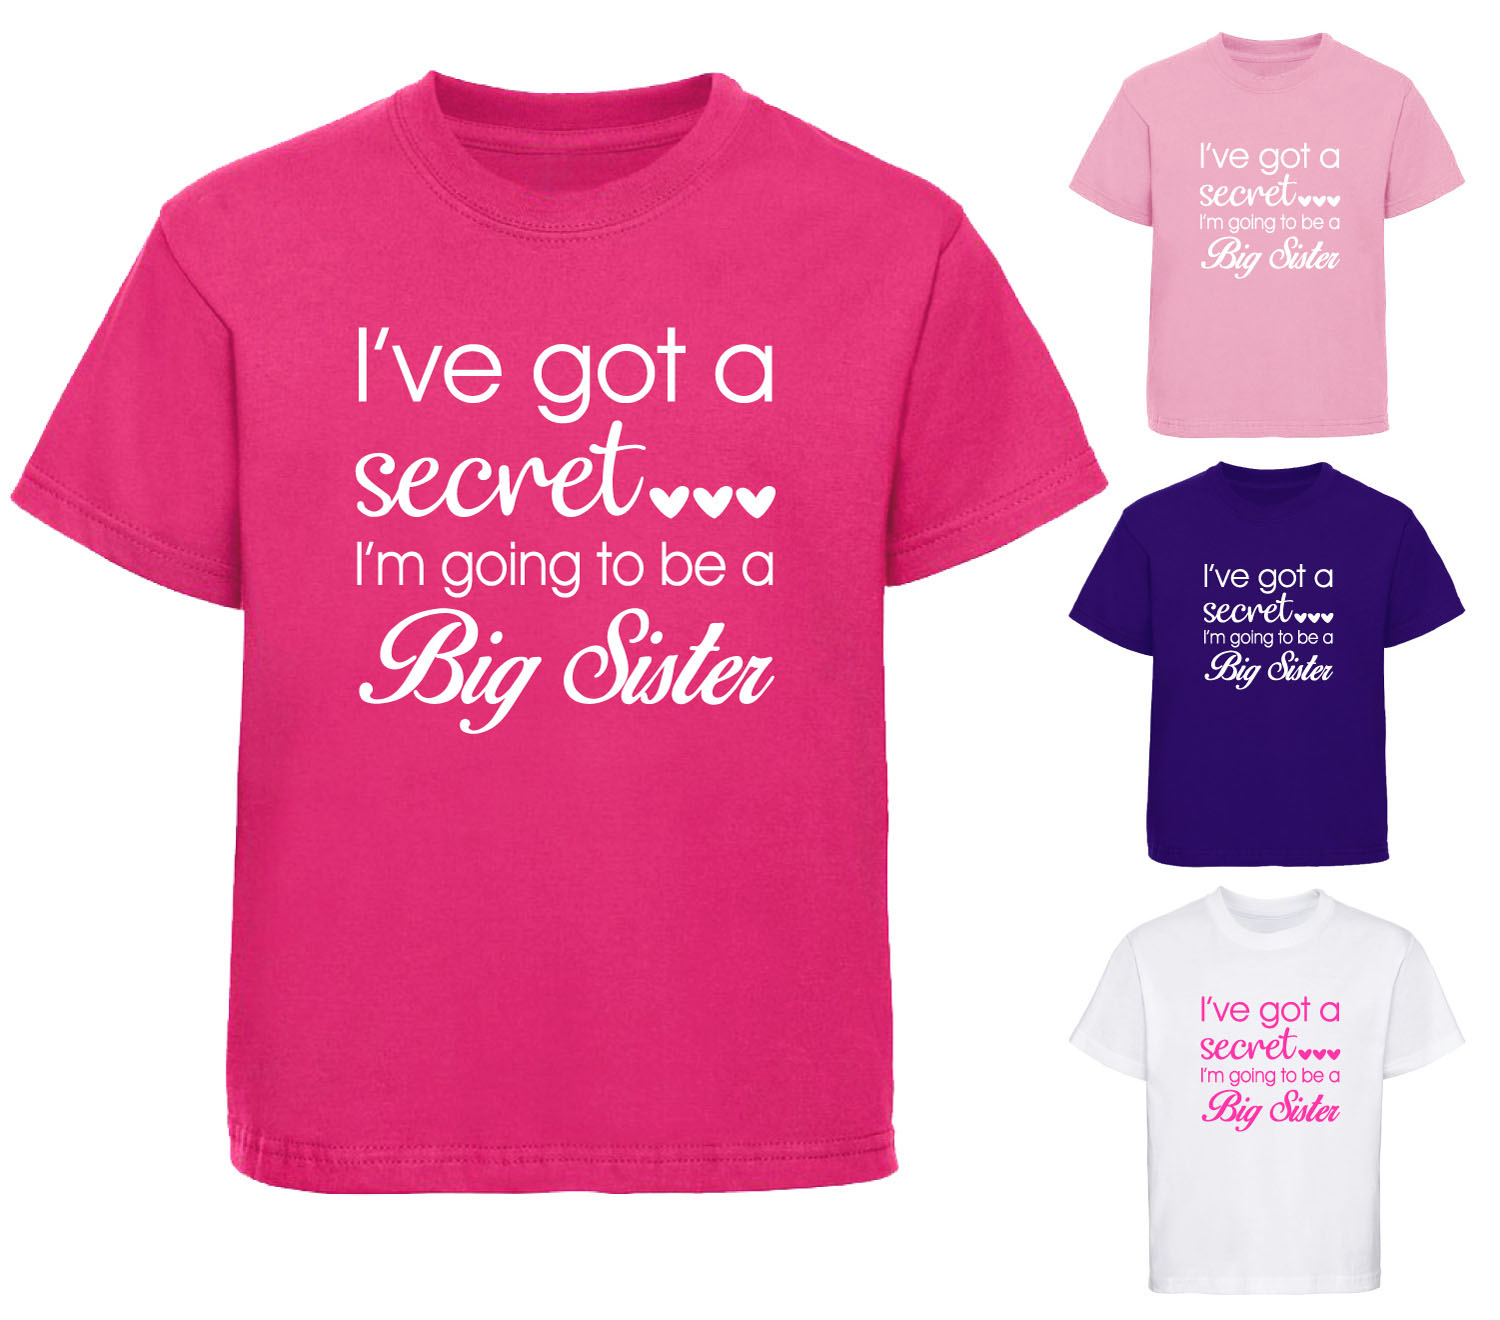 Girls T Shirts Top Shirts 2 16 Years Girls Personalised Little Sister T Shirt Flower Design Childrens T Shirt 1 12yrs Clothes Shoes Accessories Cla Ca